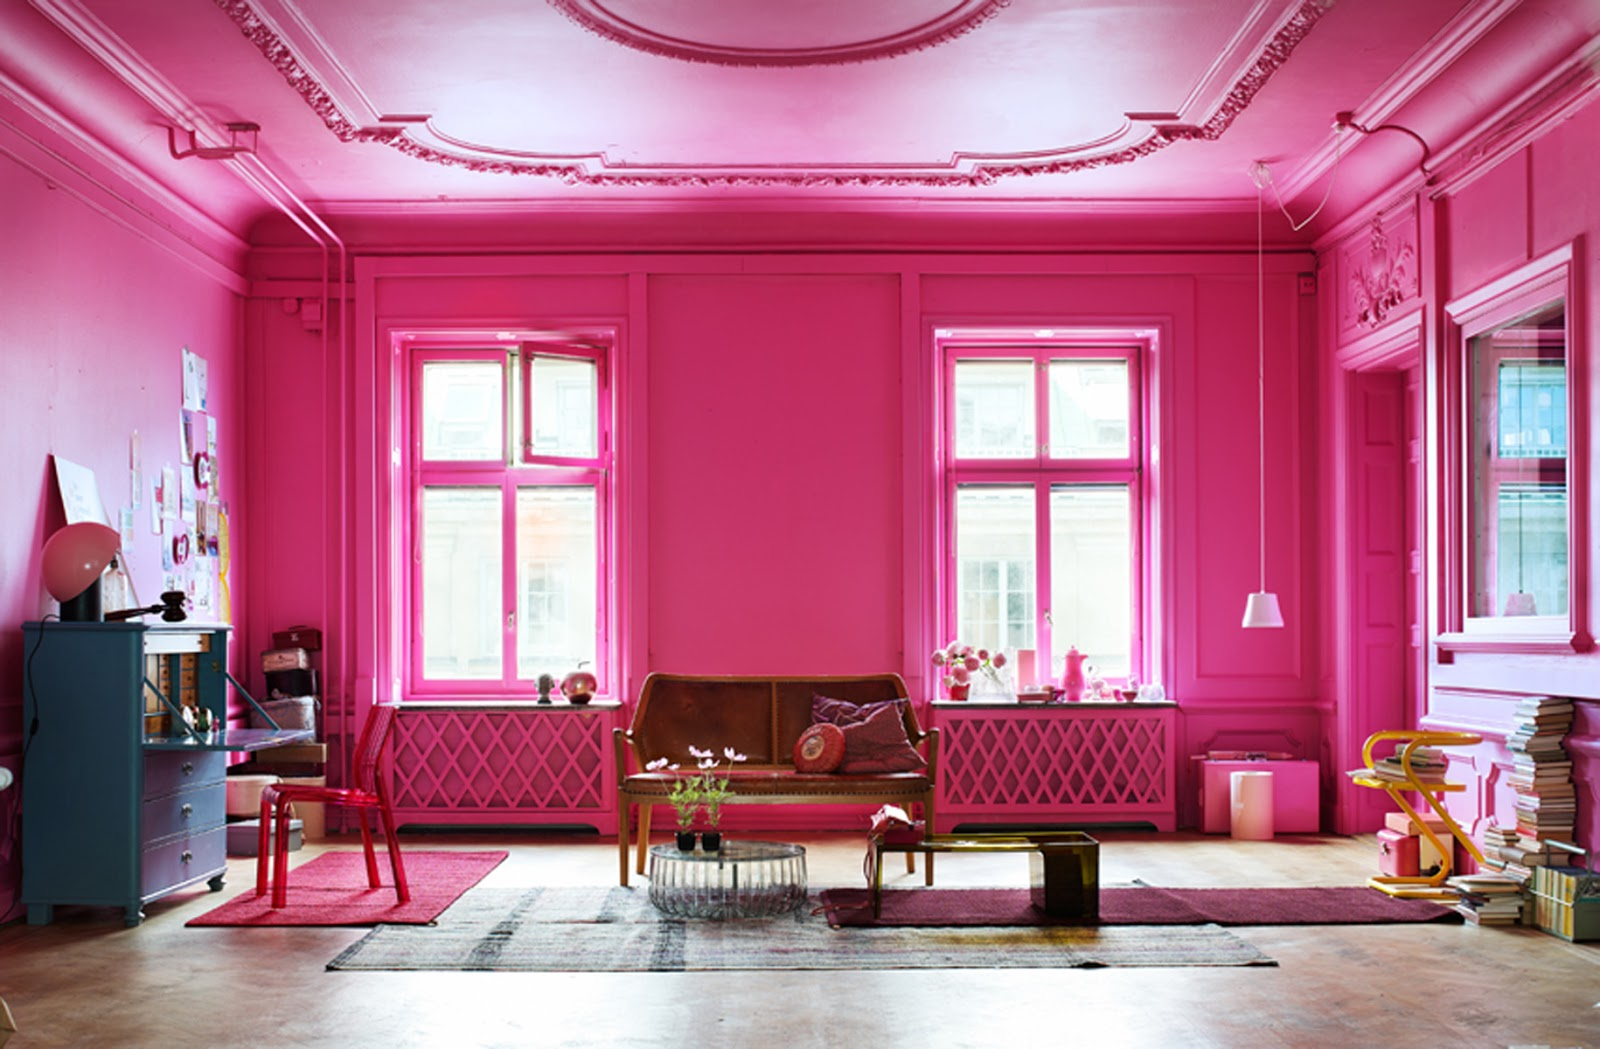 10 amazing pink living room interior design ideas https for Living room bedroom ideas